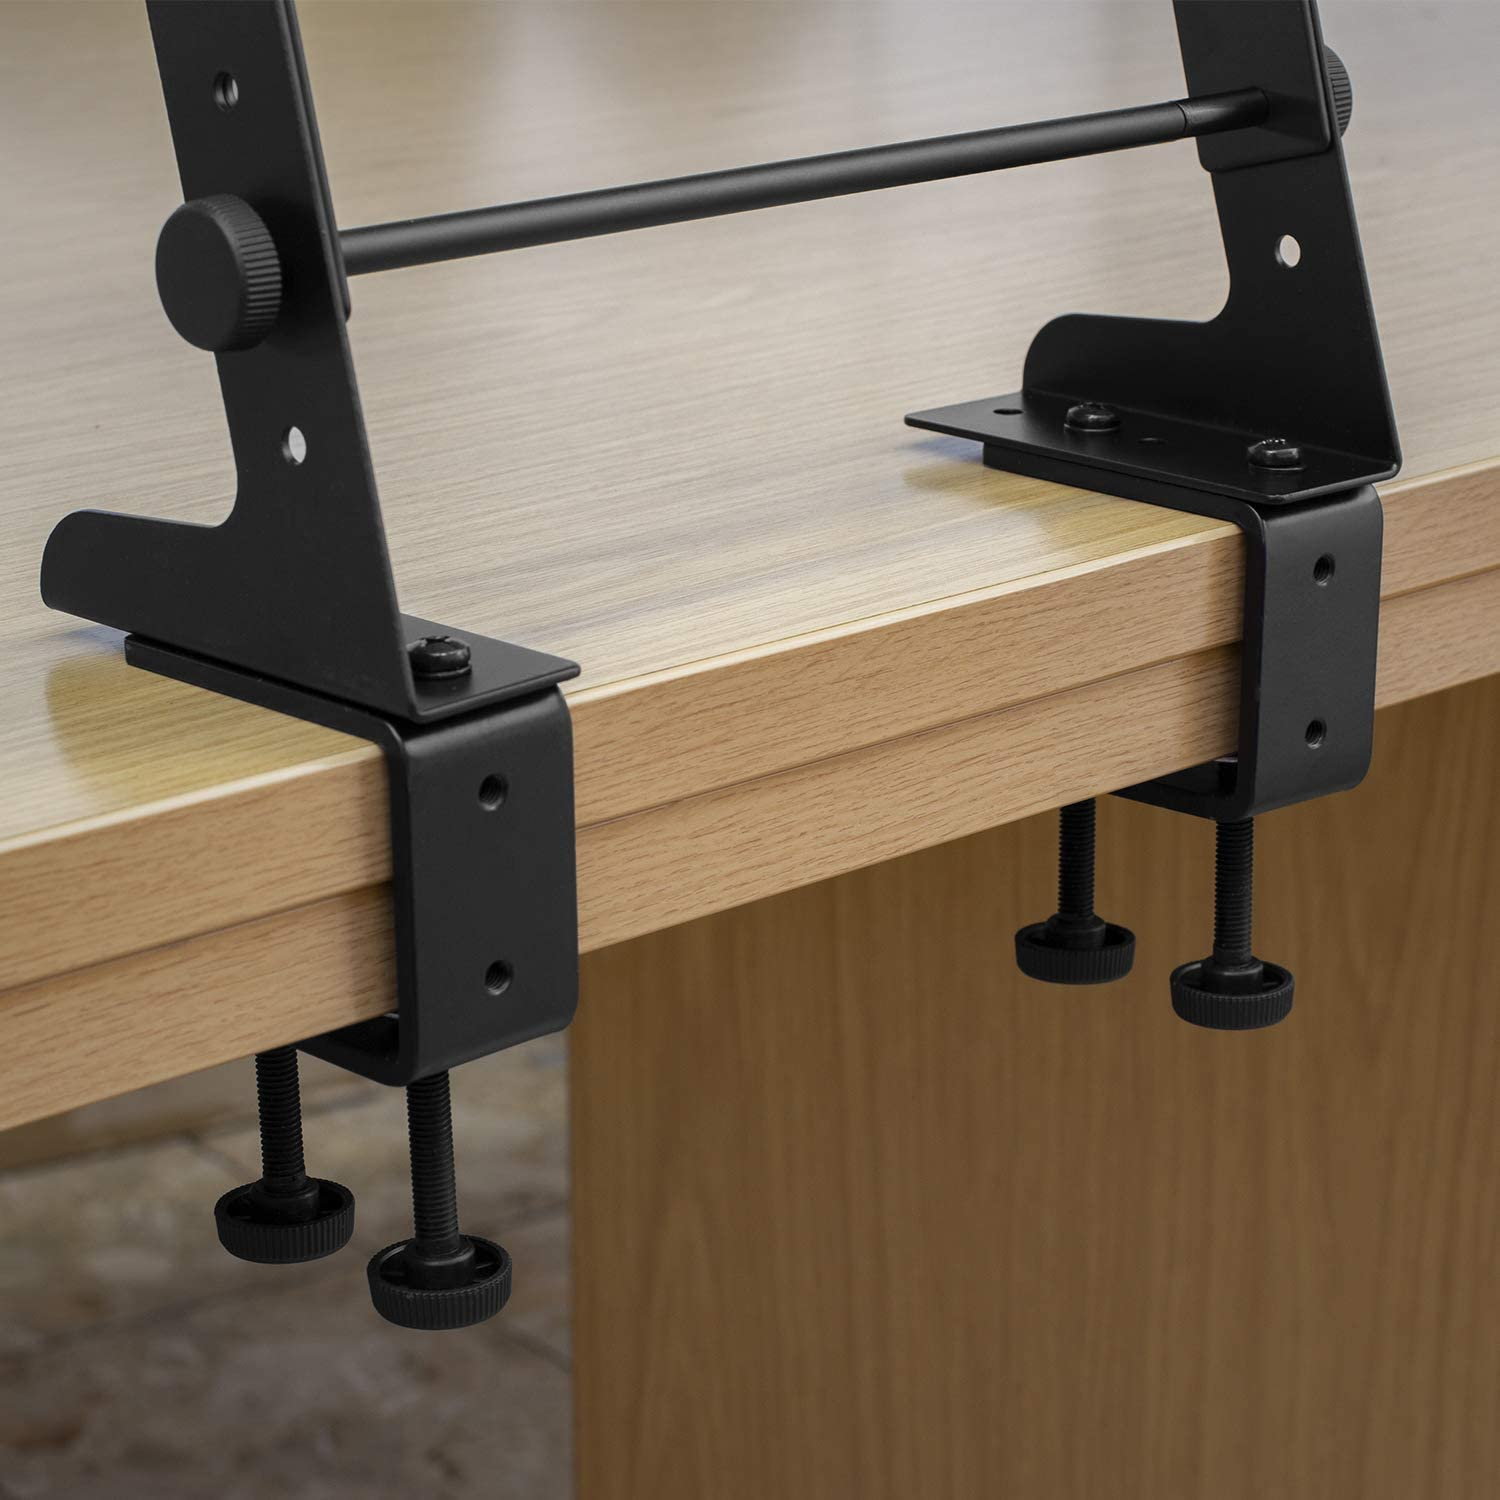 Tiger Laptop Stand//DJ Controller Stand with Shelf and Desktop Clamps